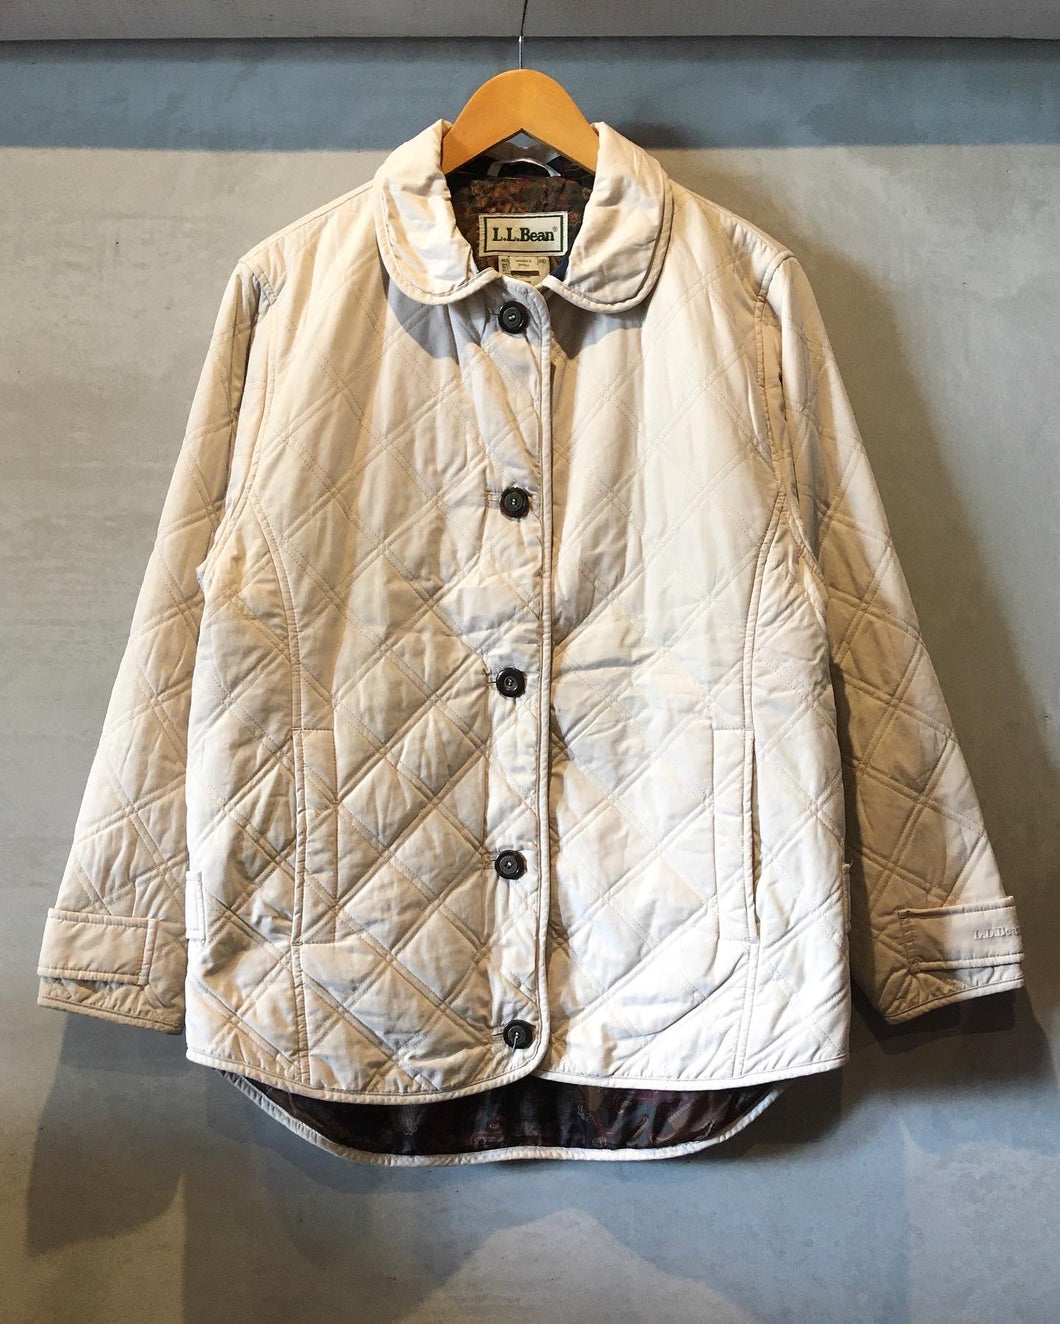 L.L.Bean-Quilting jacket-(size S)